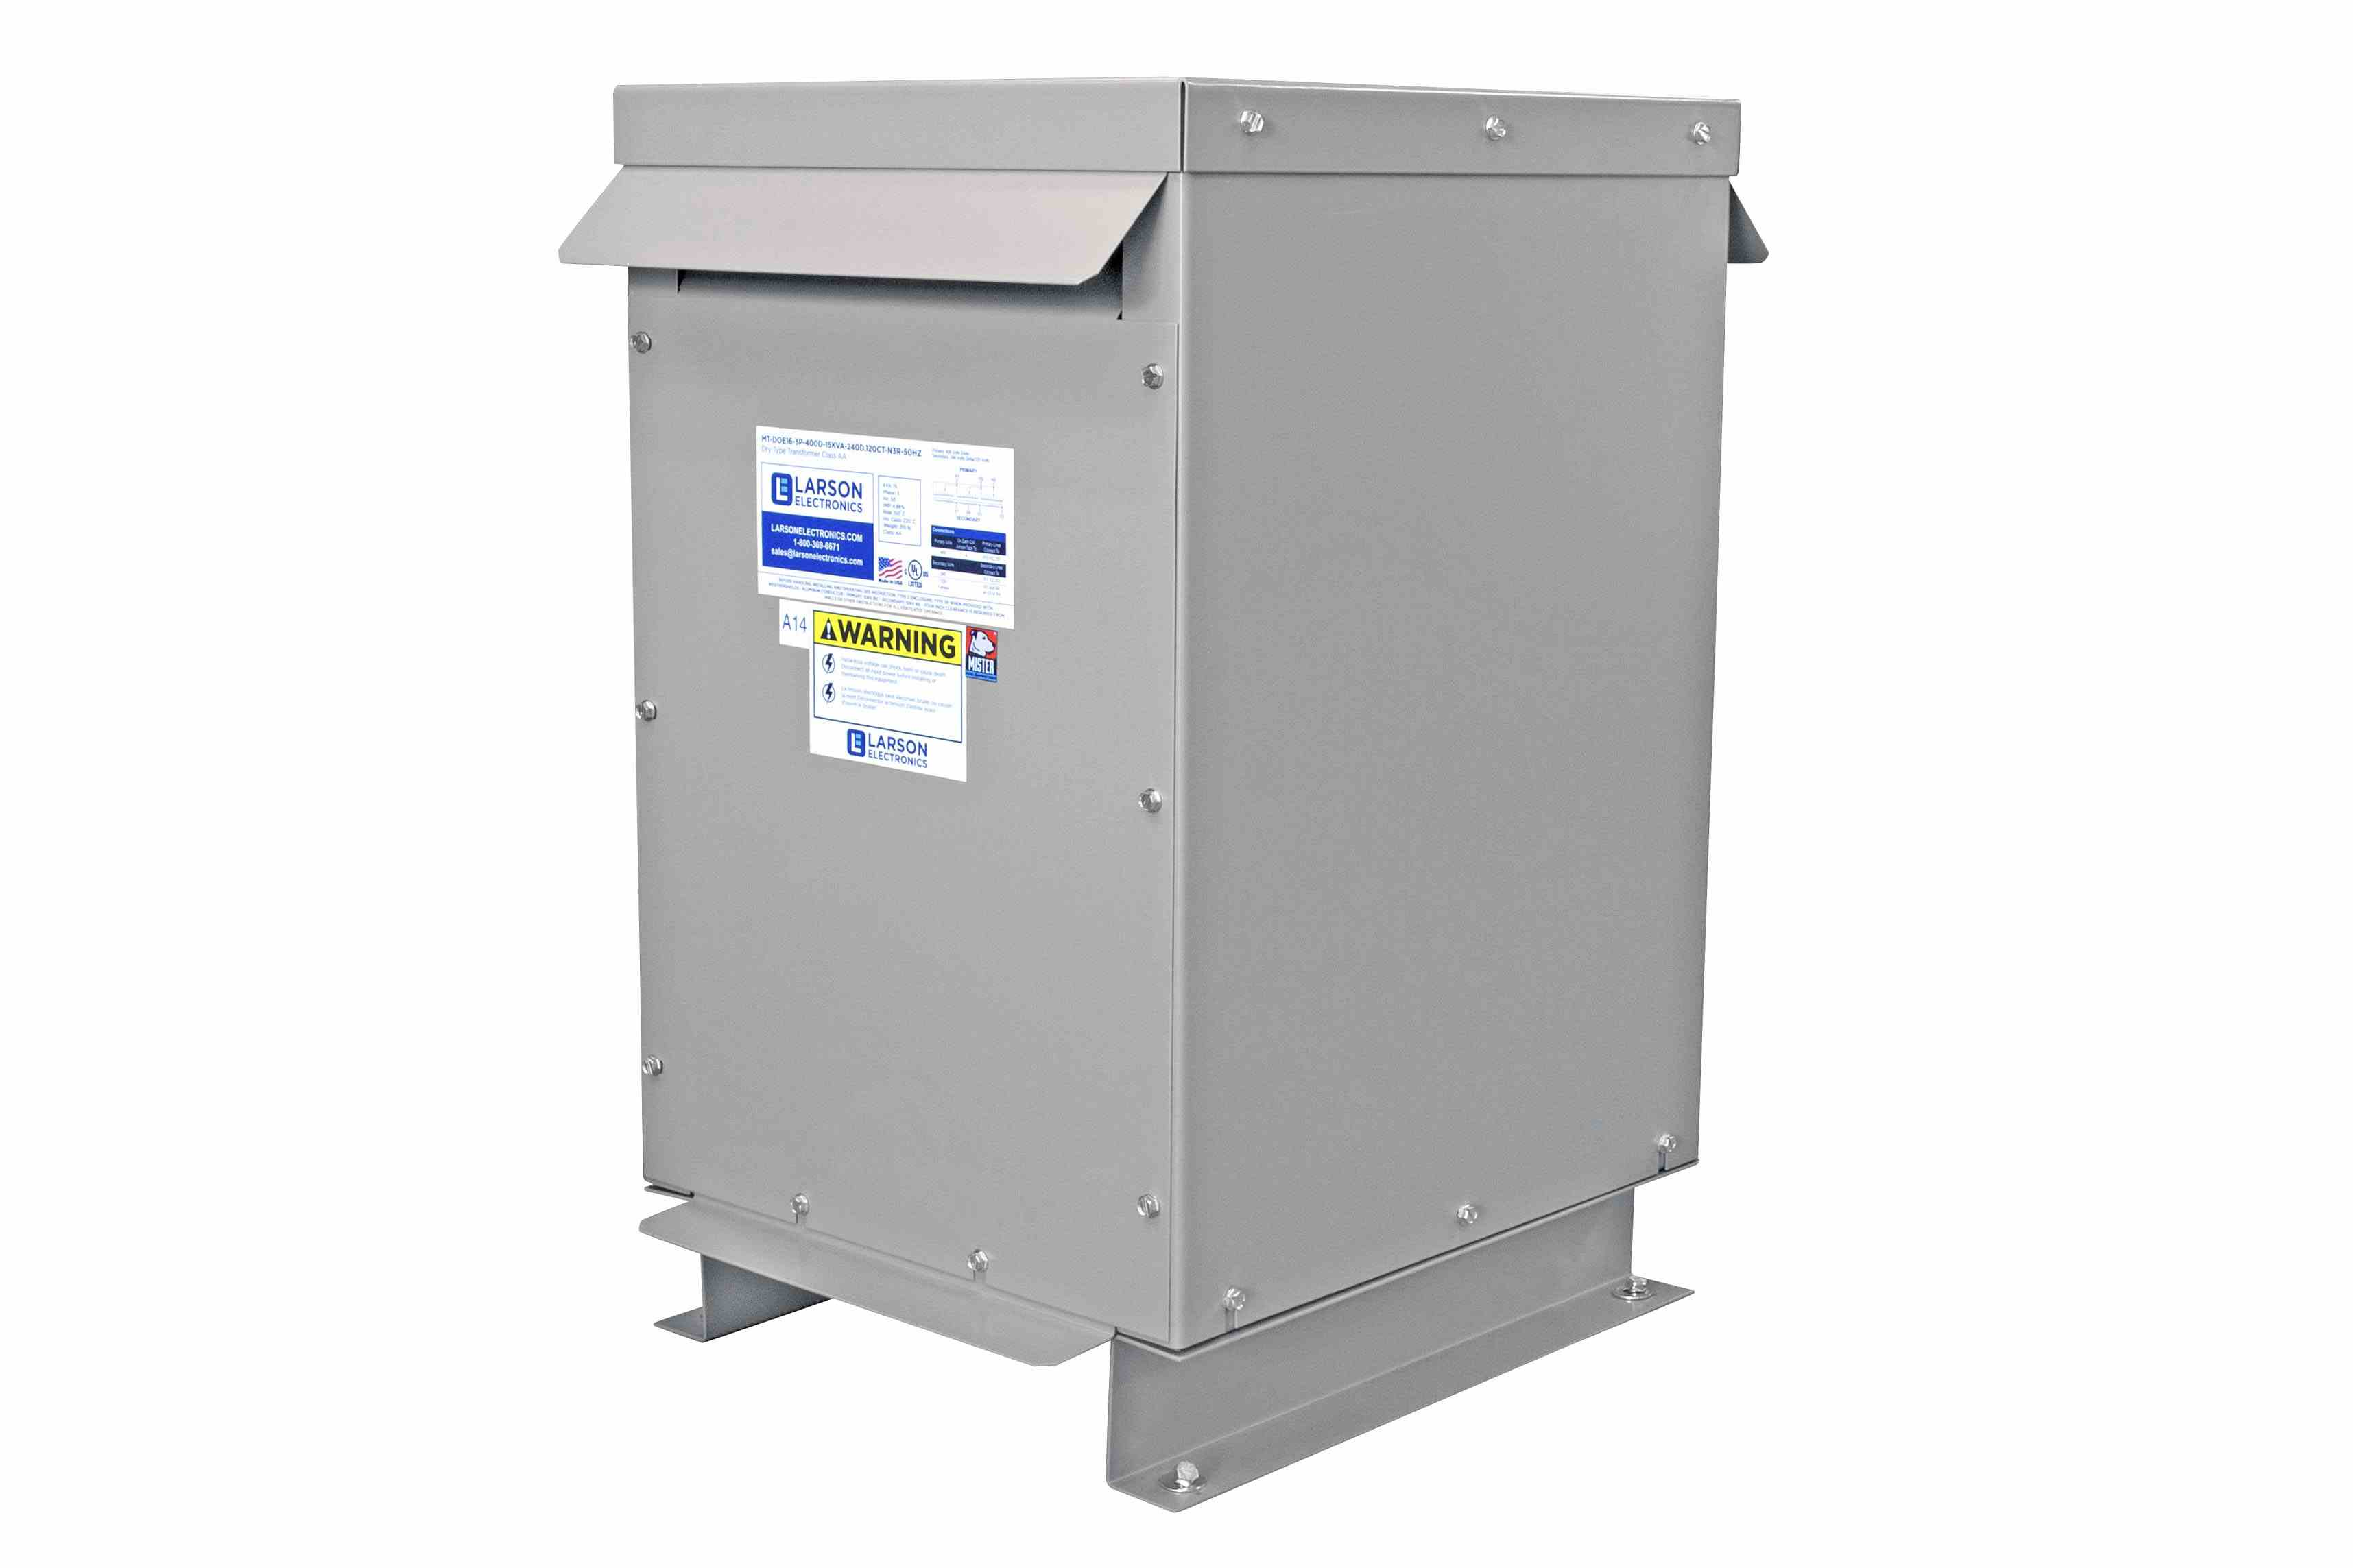 50 kVA 3PH Isolation Transformer, 480V Delta Primary, 240 Delta Secondary, N3R, Ventilated, 60 Hz